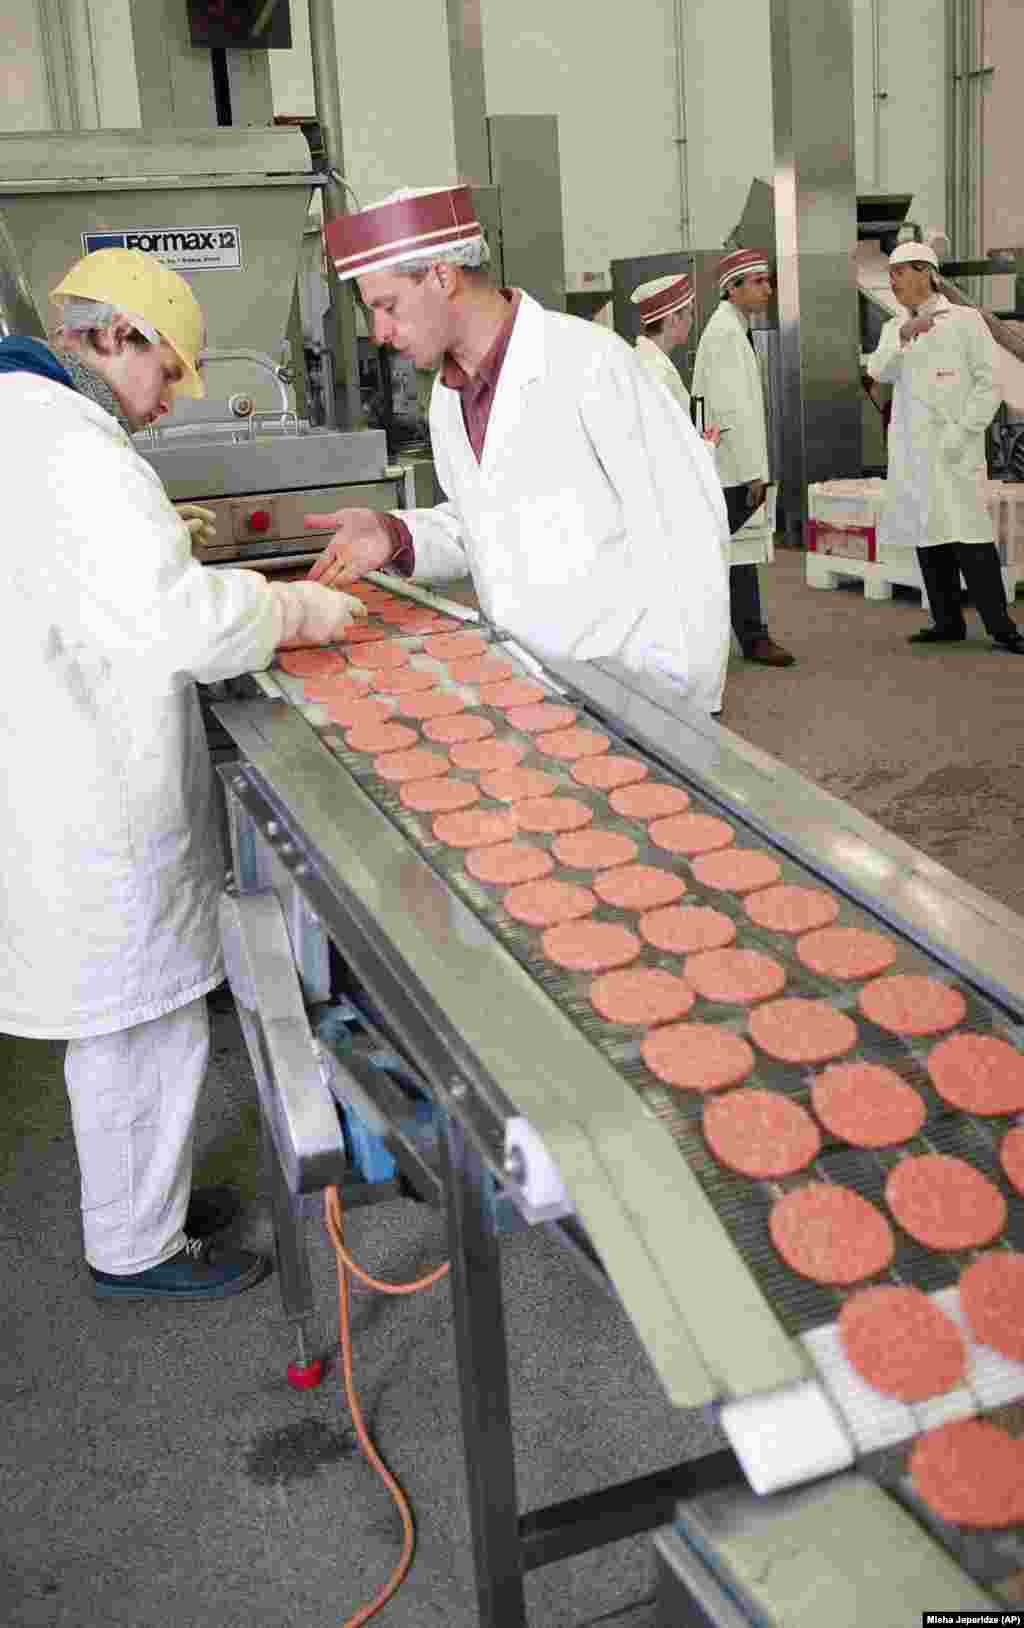 Quality-control inspectors at a McDonald's food-processing plant located in the Moscow suburb of Solntsevo scan a conveyor belt for poorly formed hamburger patties in 1994. Machinery at the plant cranked out 10,000 hamburger patties hourly from beef provided by eight local slaughterhouses.